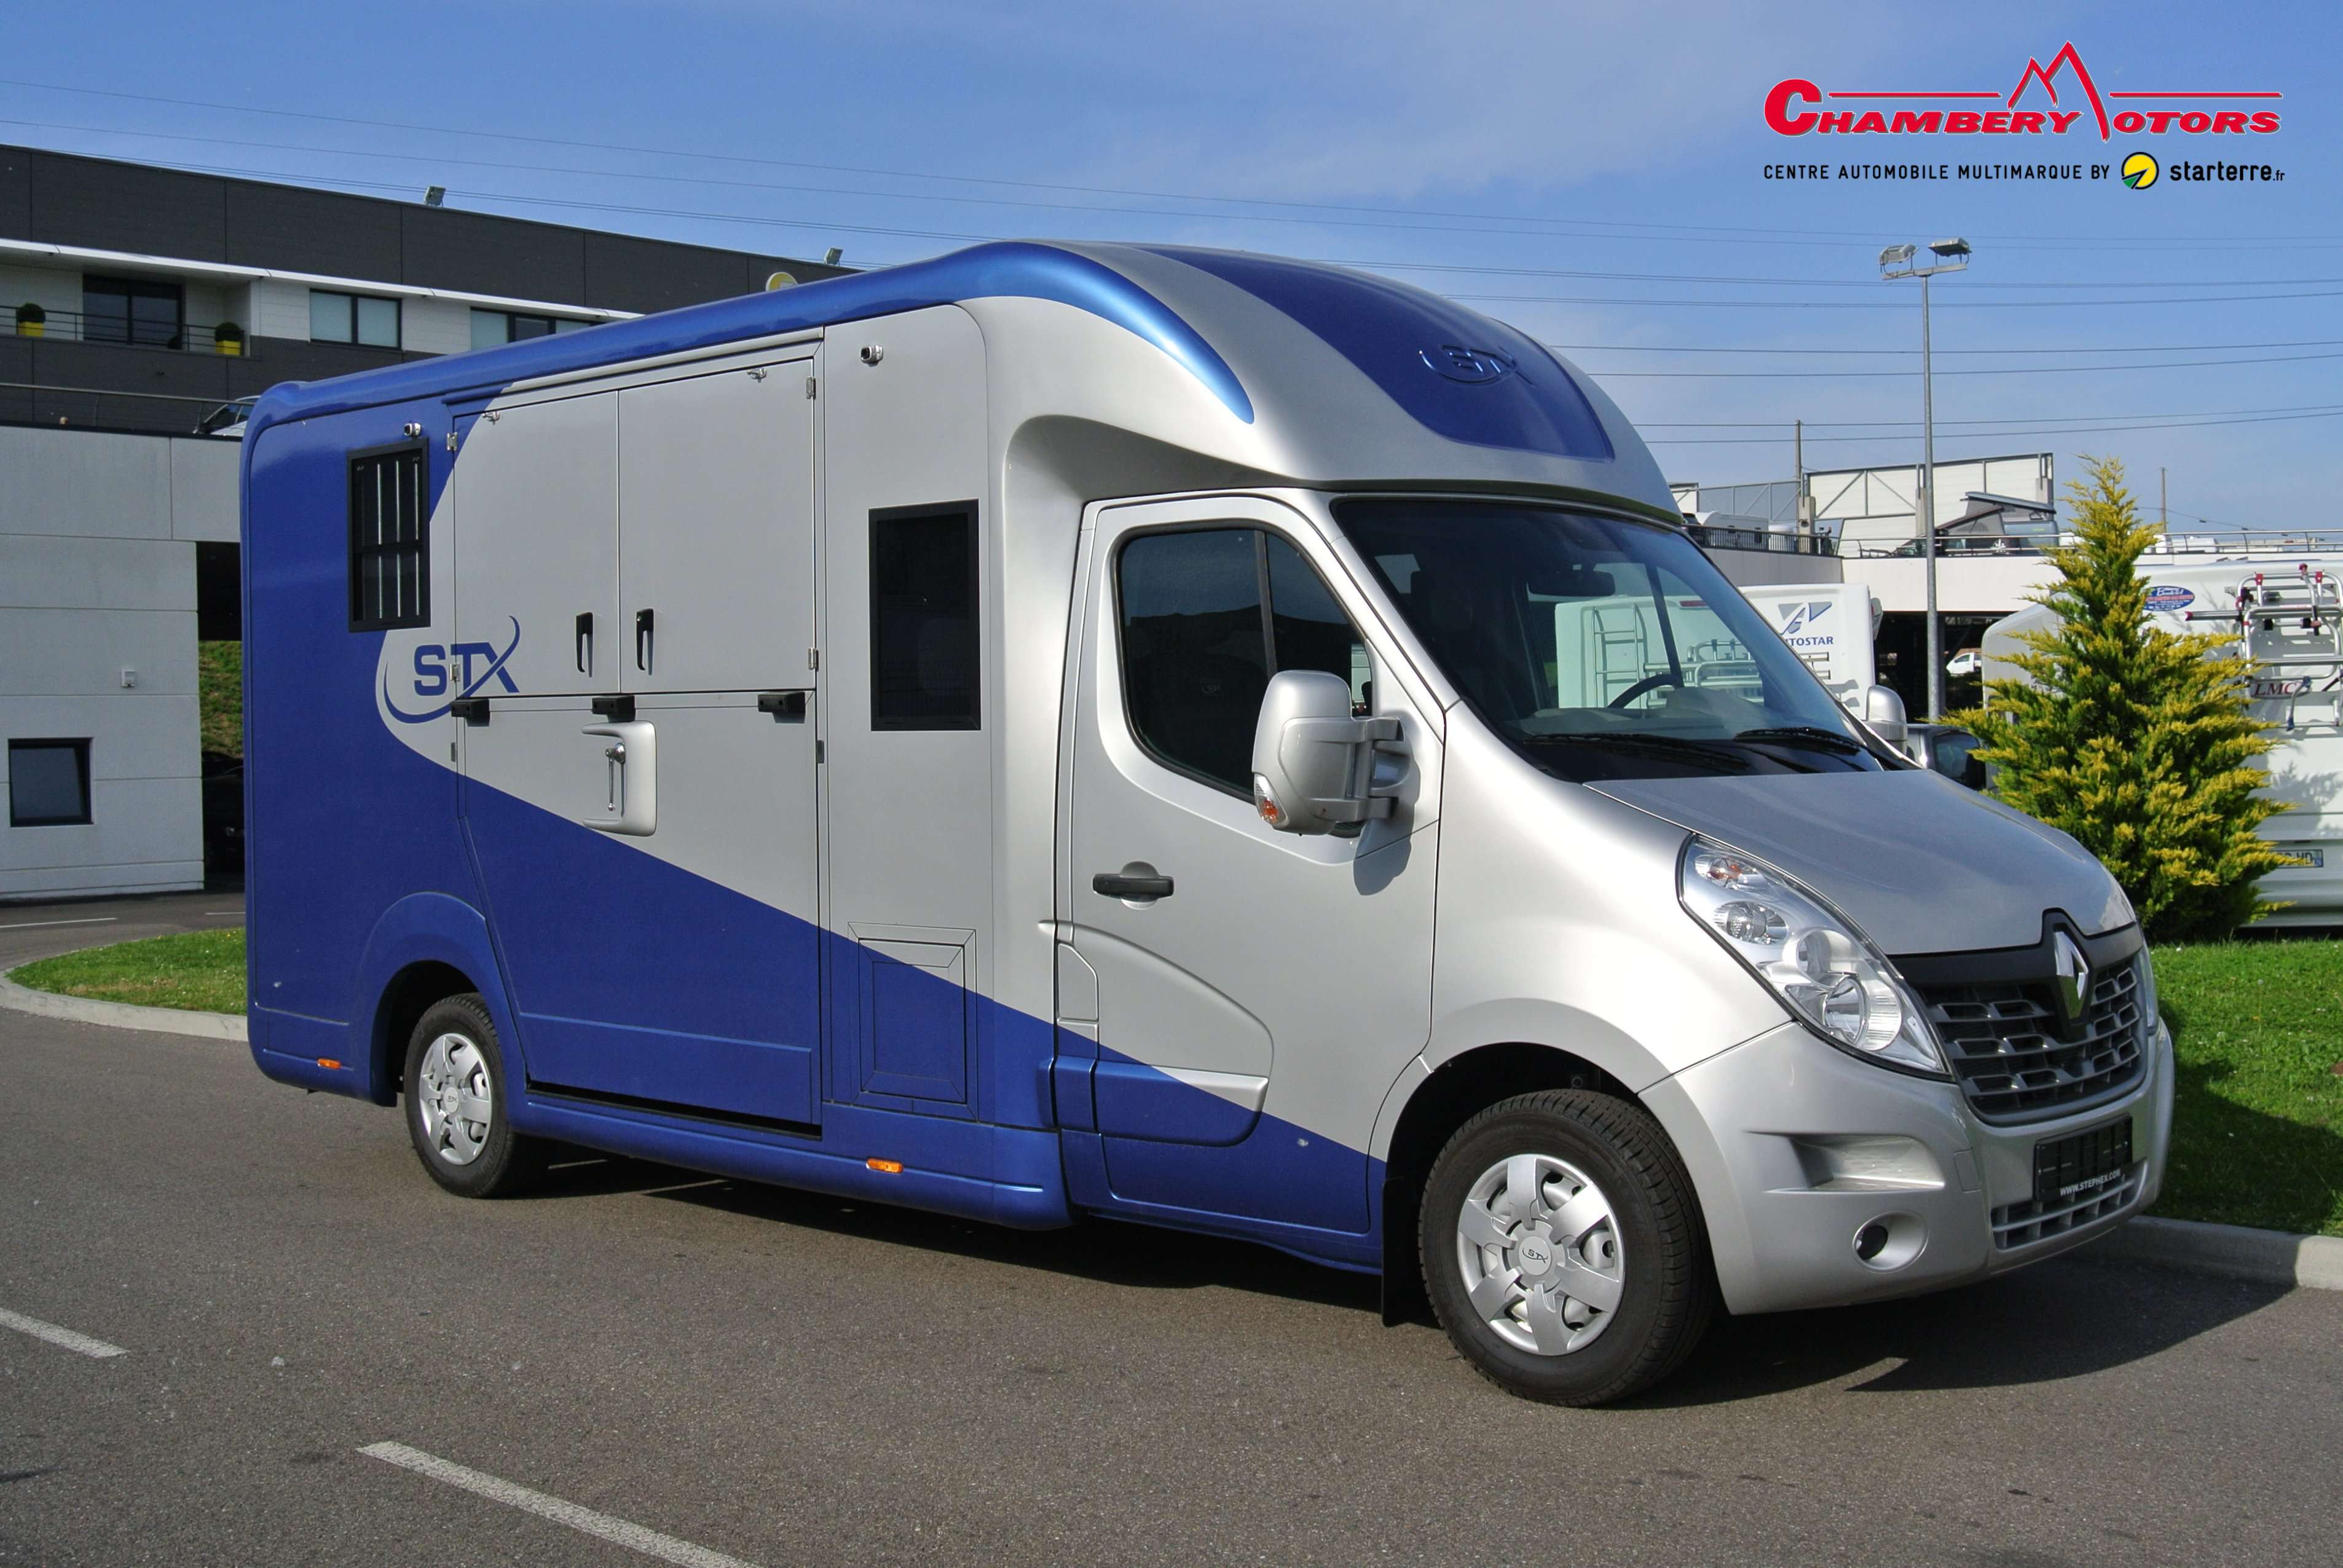 stx haras 5 places renault master dci 170 l3 11700544 chamberymotors. Black Bedroom Furniture Sets. Home Design Ideas